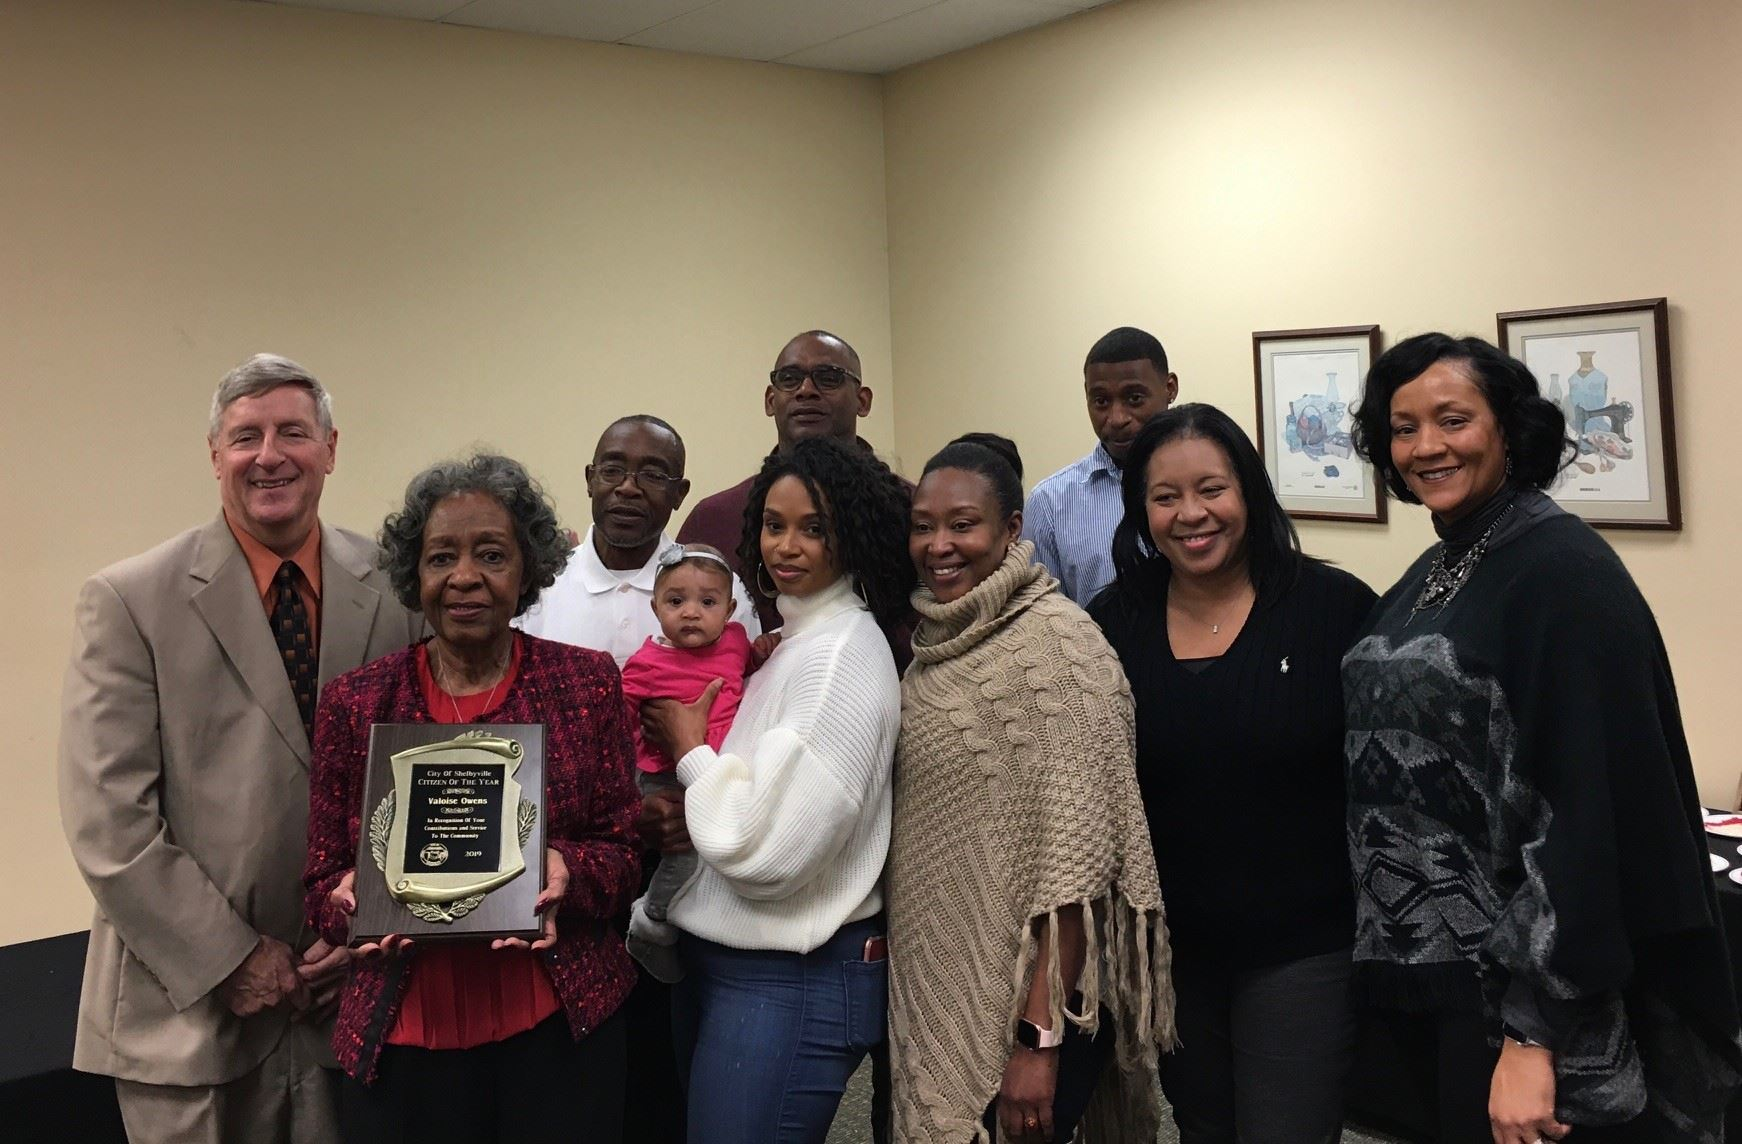 Val Owens 2019 Citizen of the Year